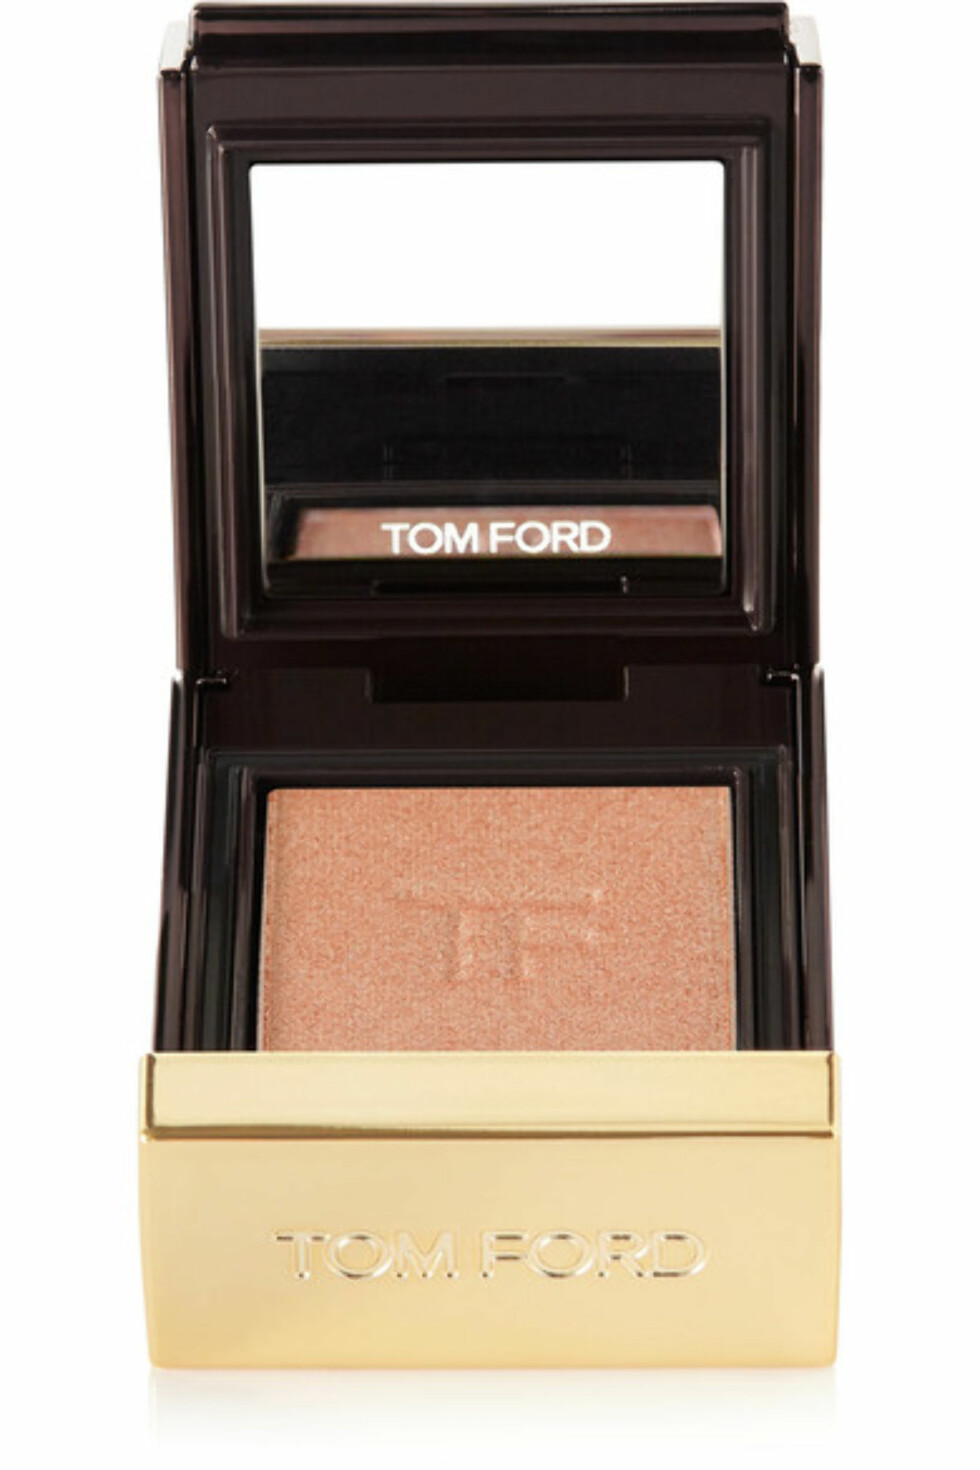 Øyeskygge fra Tom Ford |350,-| https://www.net-a-porter.com/no/en/product/1046894/tom_ford_beauty/private-shadow---warm-leatherette-02